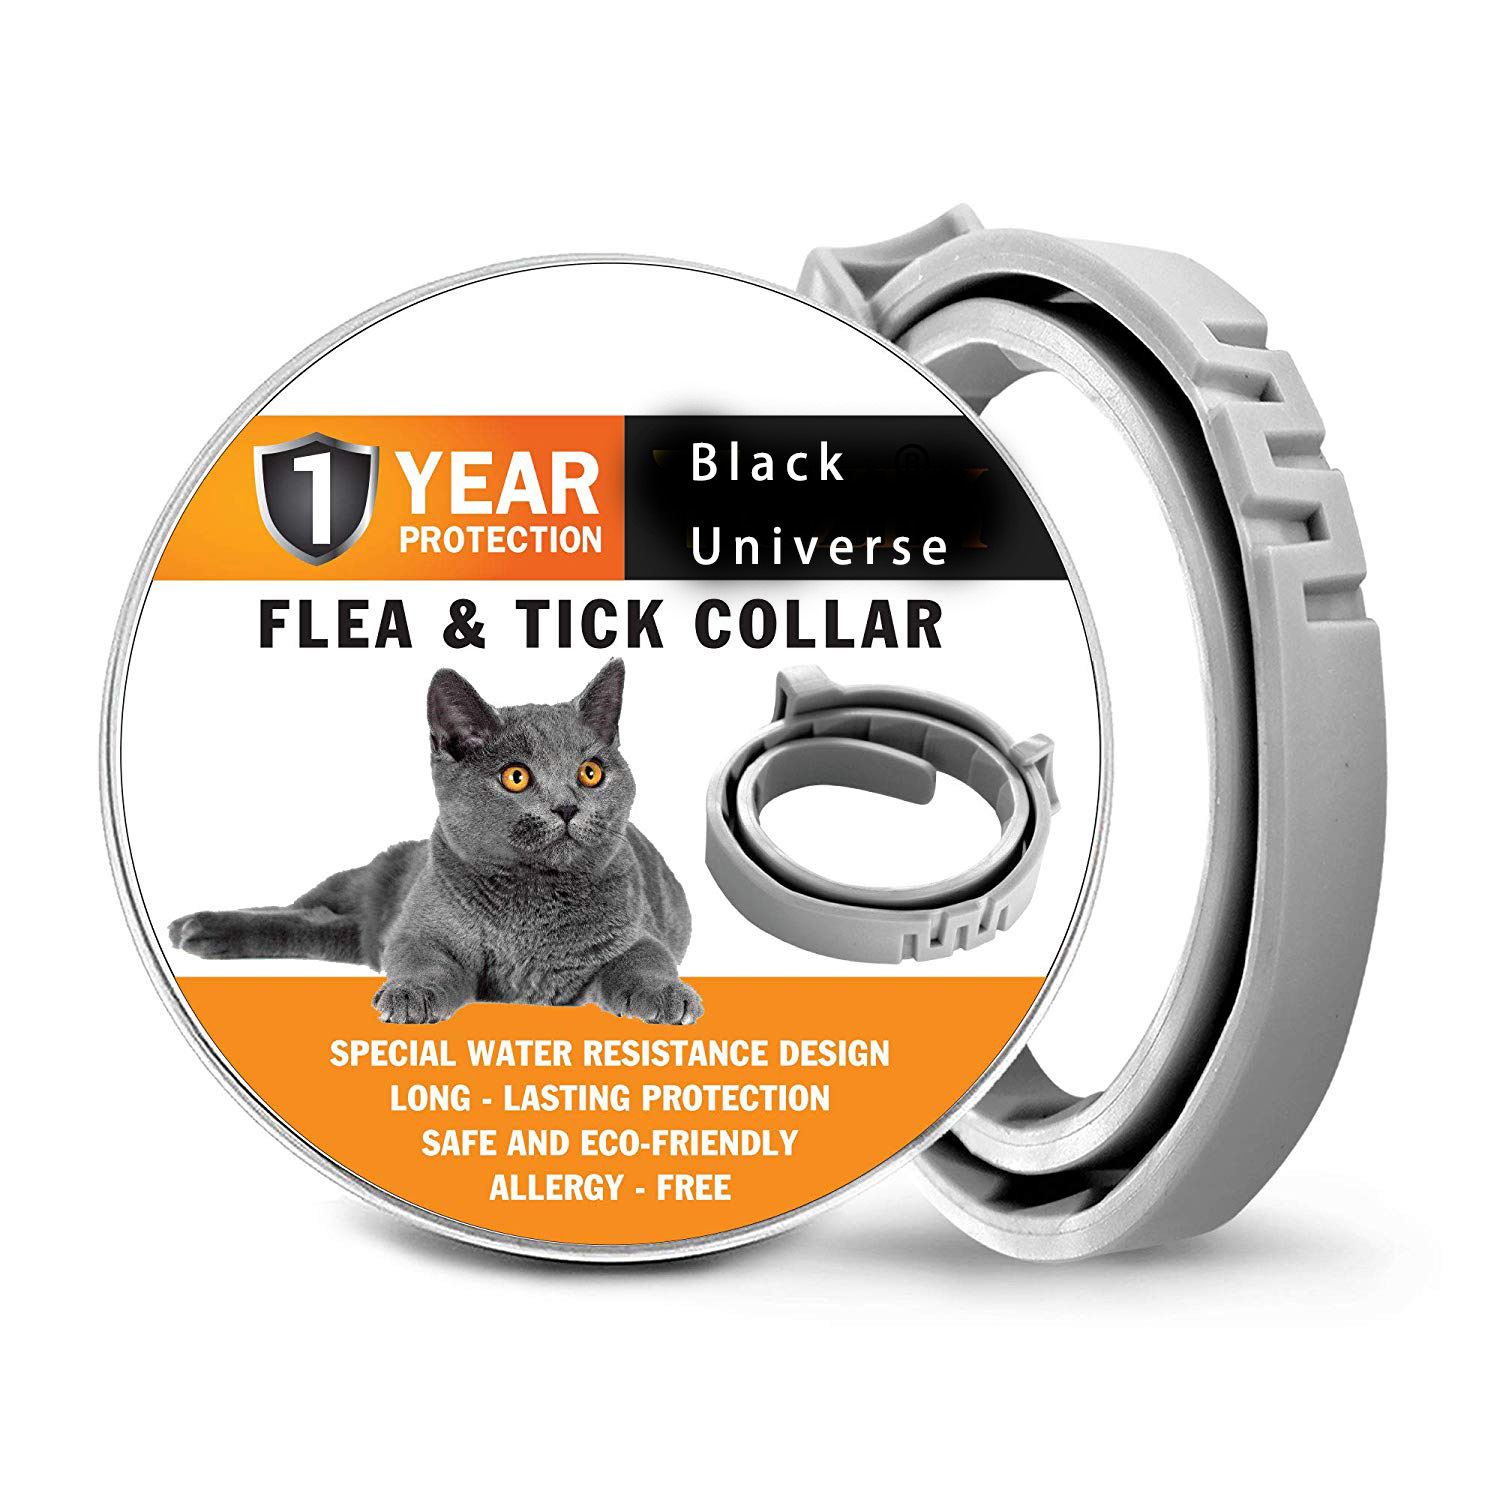 New Pet To Flea Neck Ring Dog Cat Lice Mosquitoes Worm Waterproof Deodorizing Natural Essential Oil 8 Months Protection